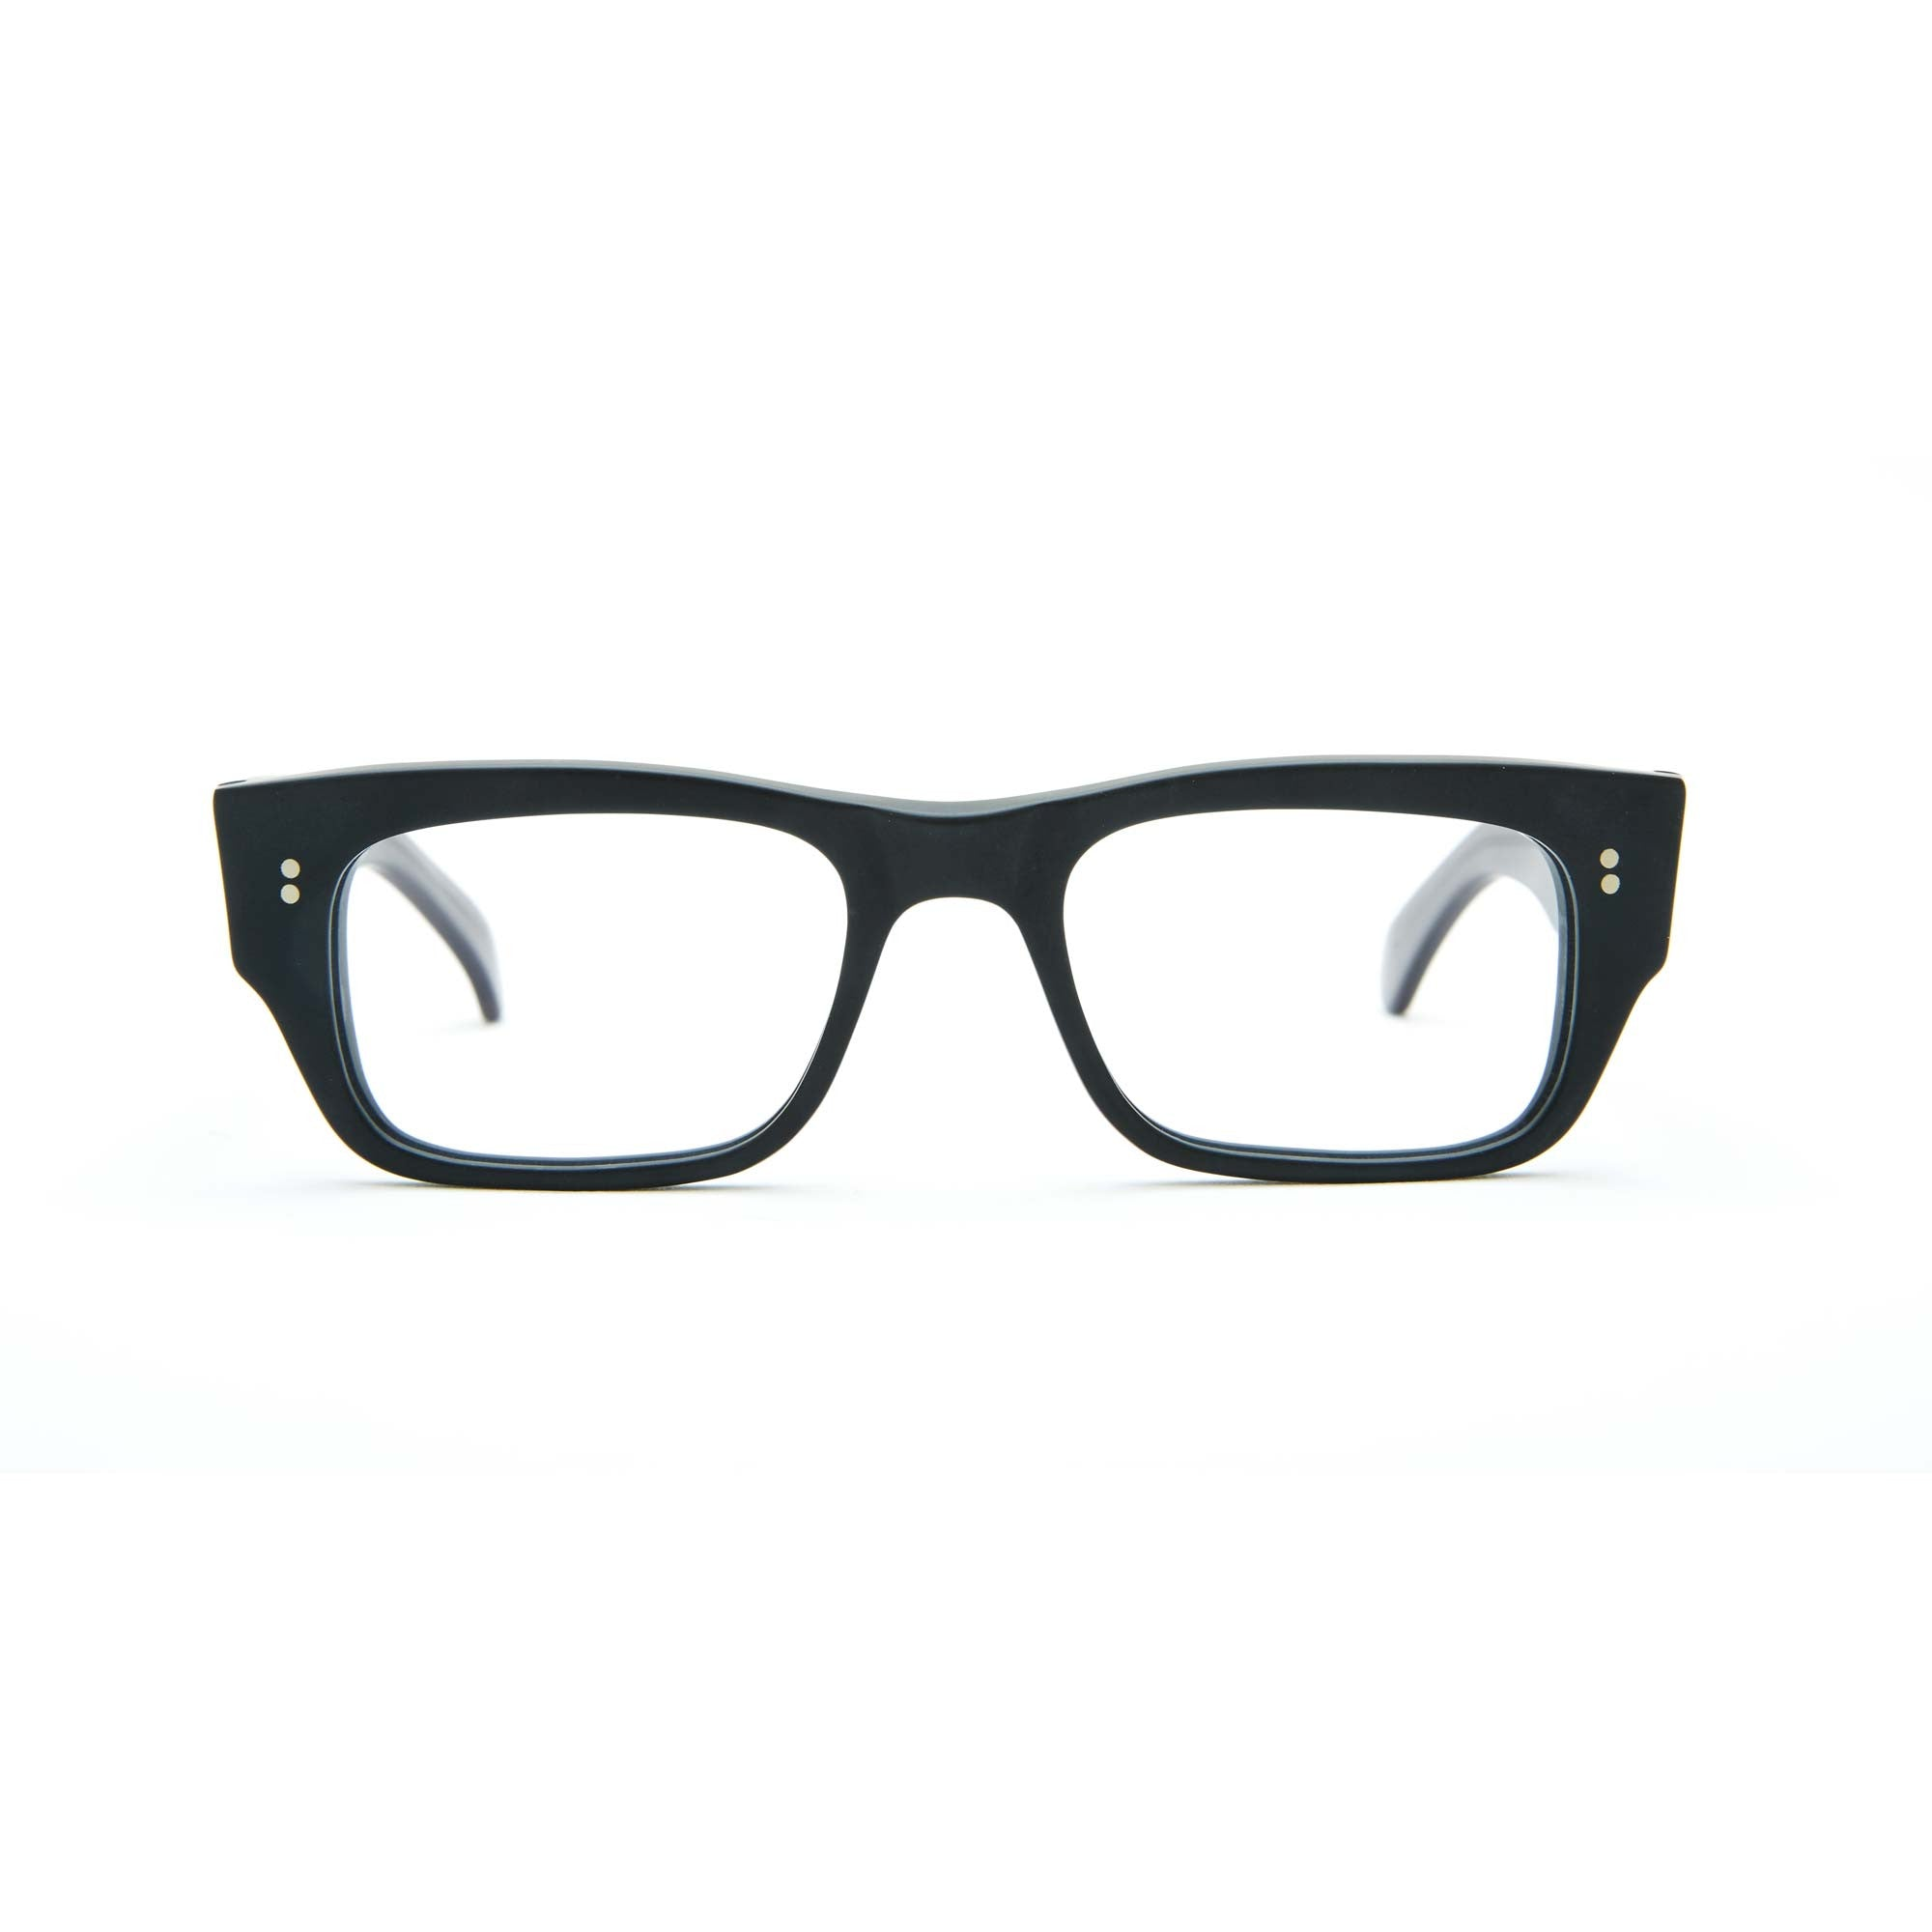 Garrison Rd. Matte Black with Grey Temples